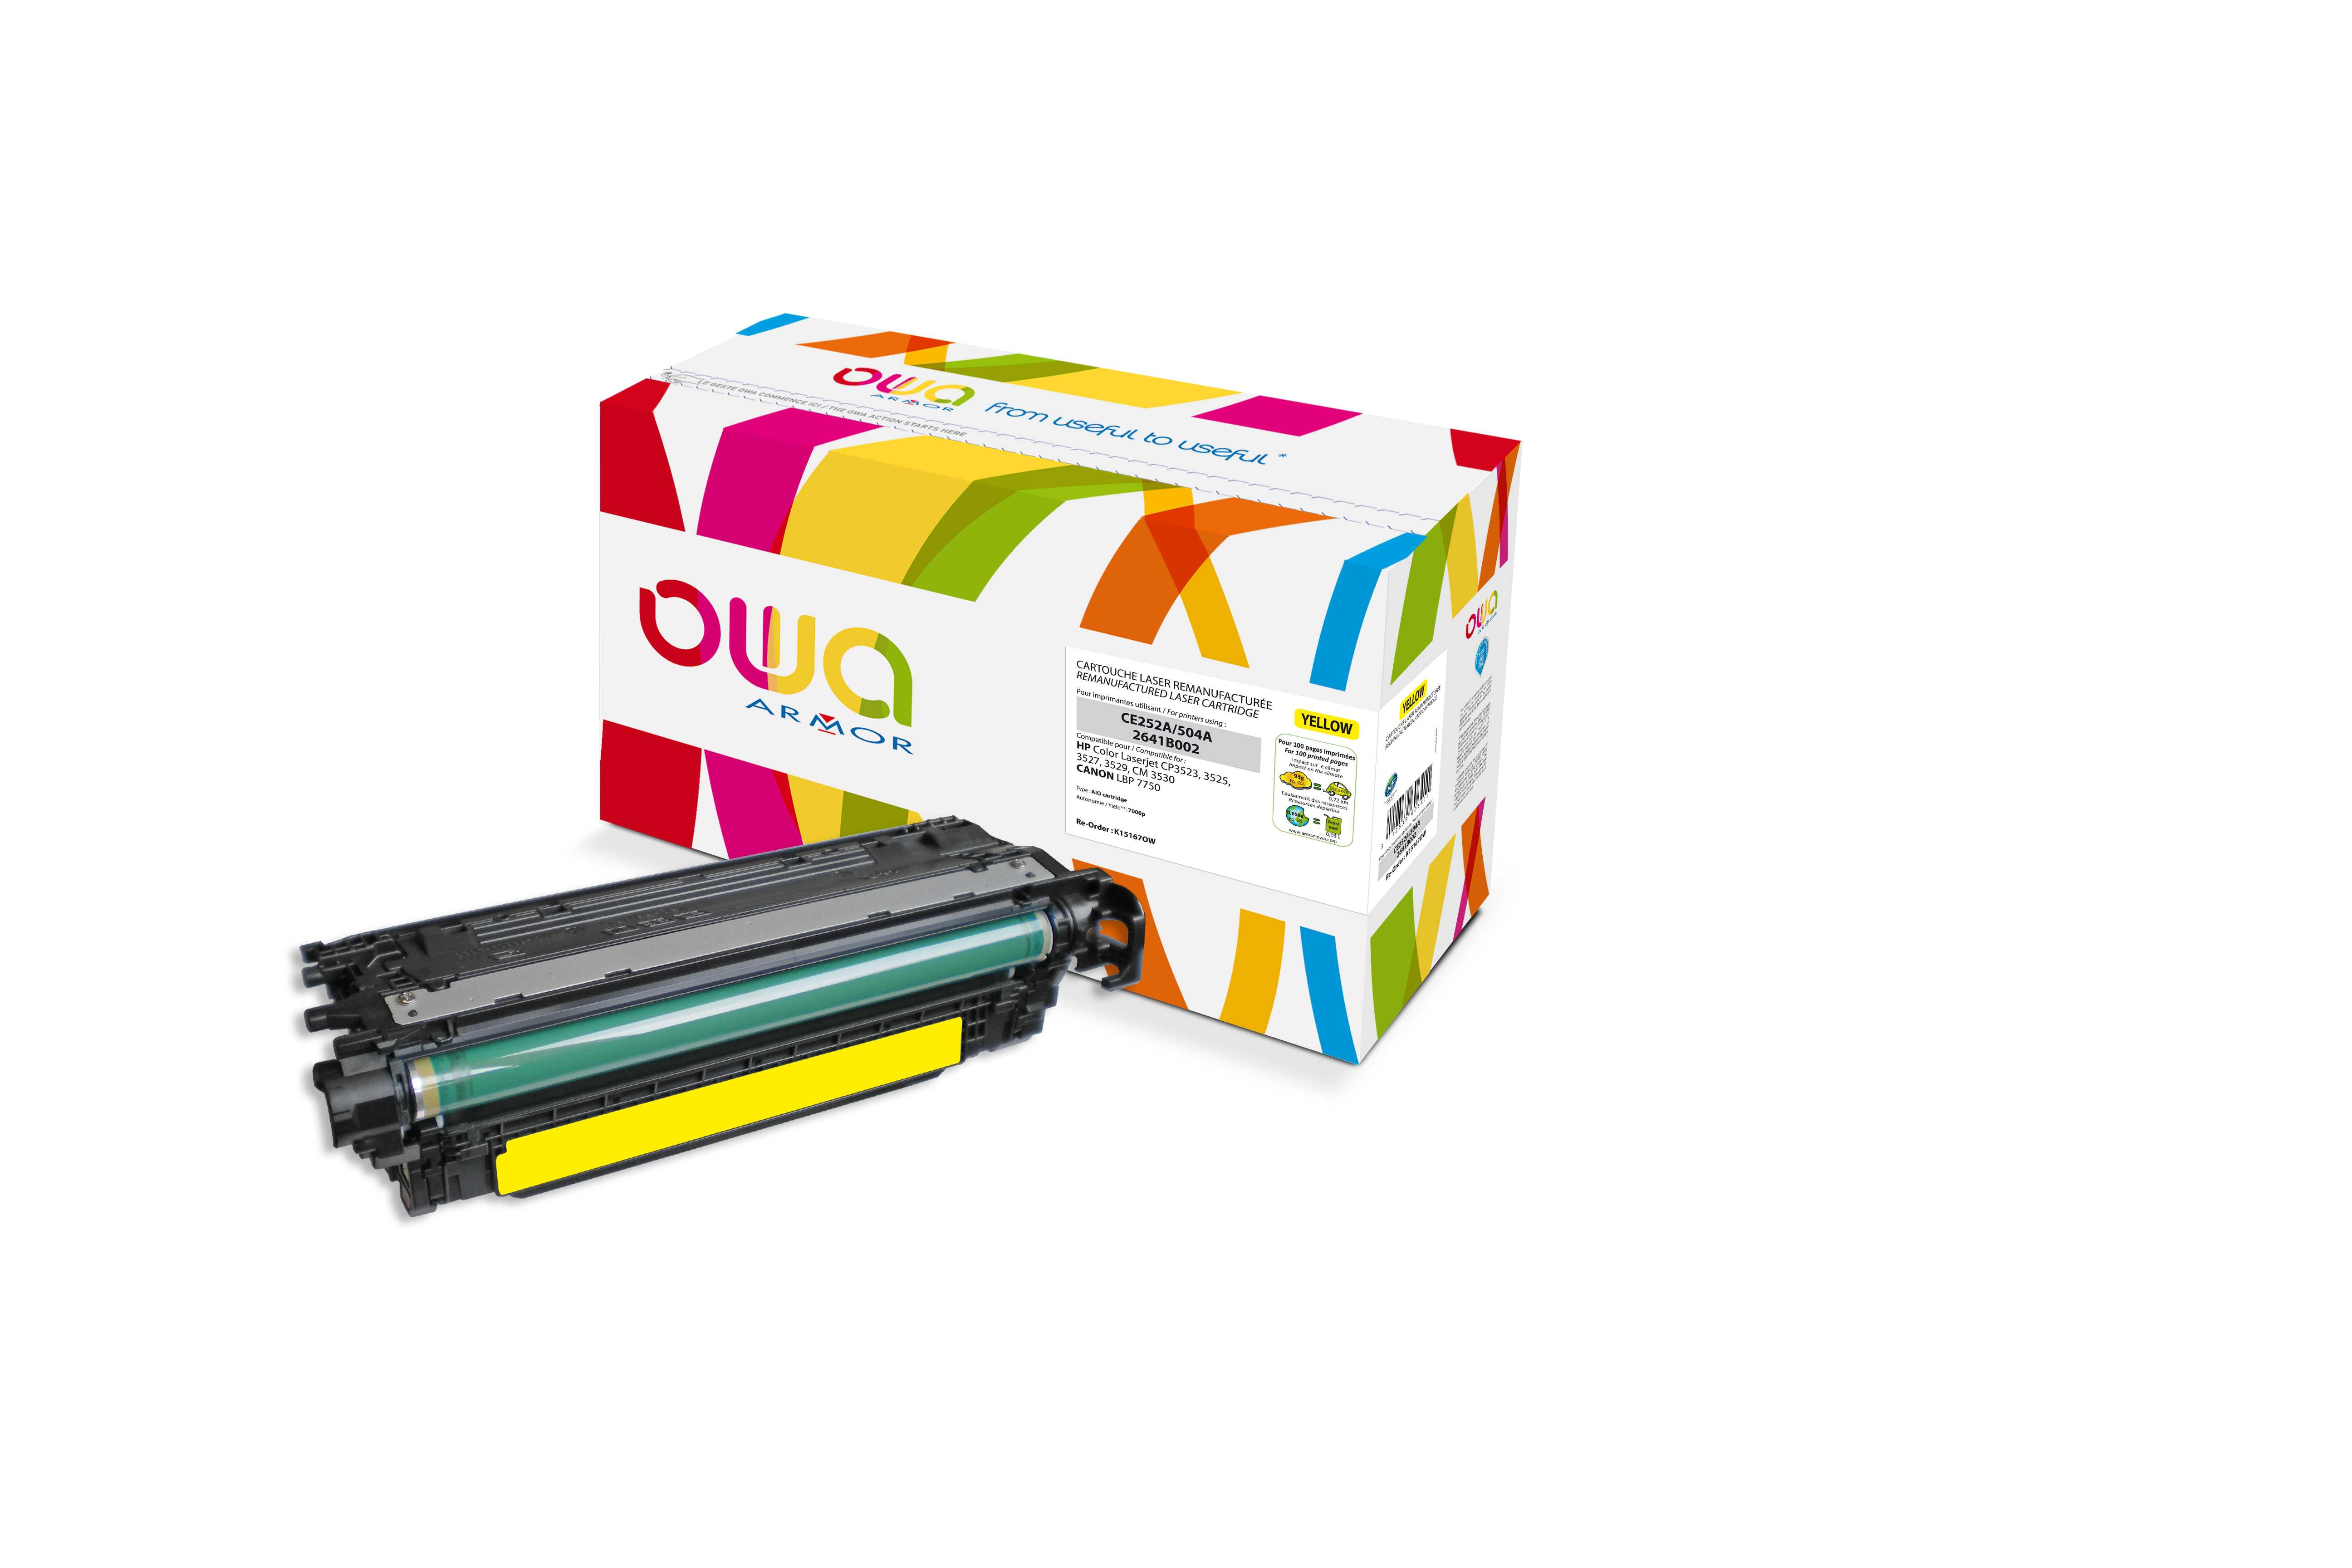 OWA Armor toner pro HP CLJ CP3525 (CE252A),7.000s, Y